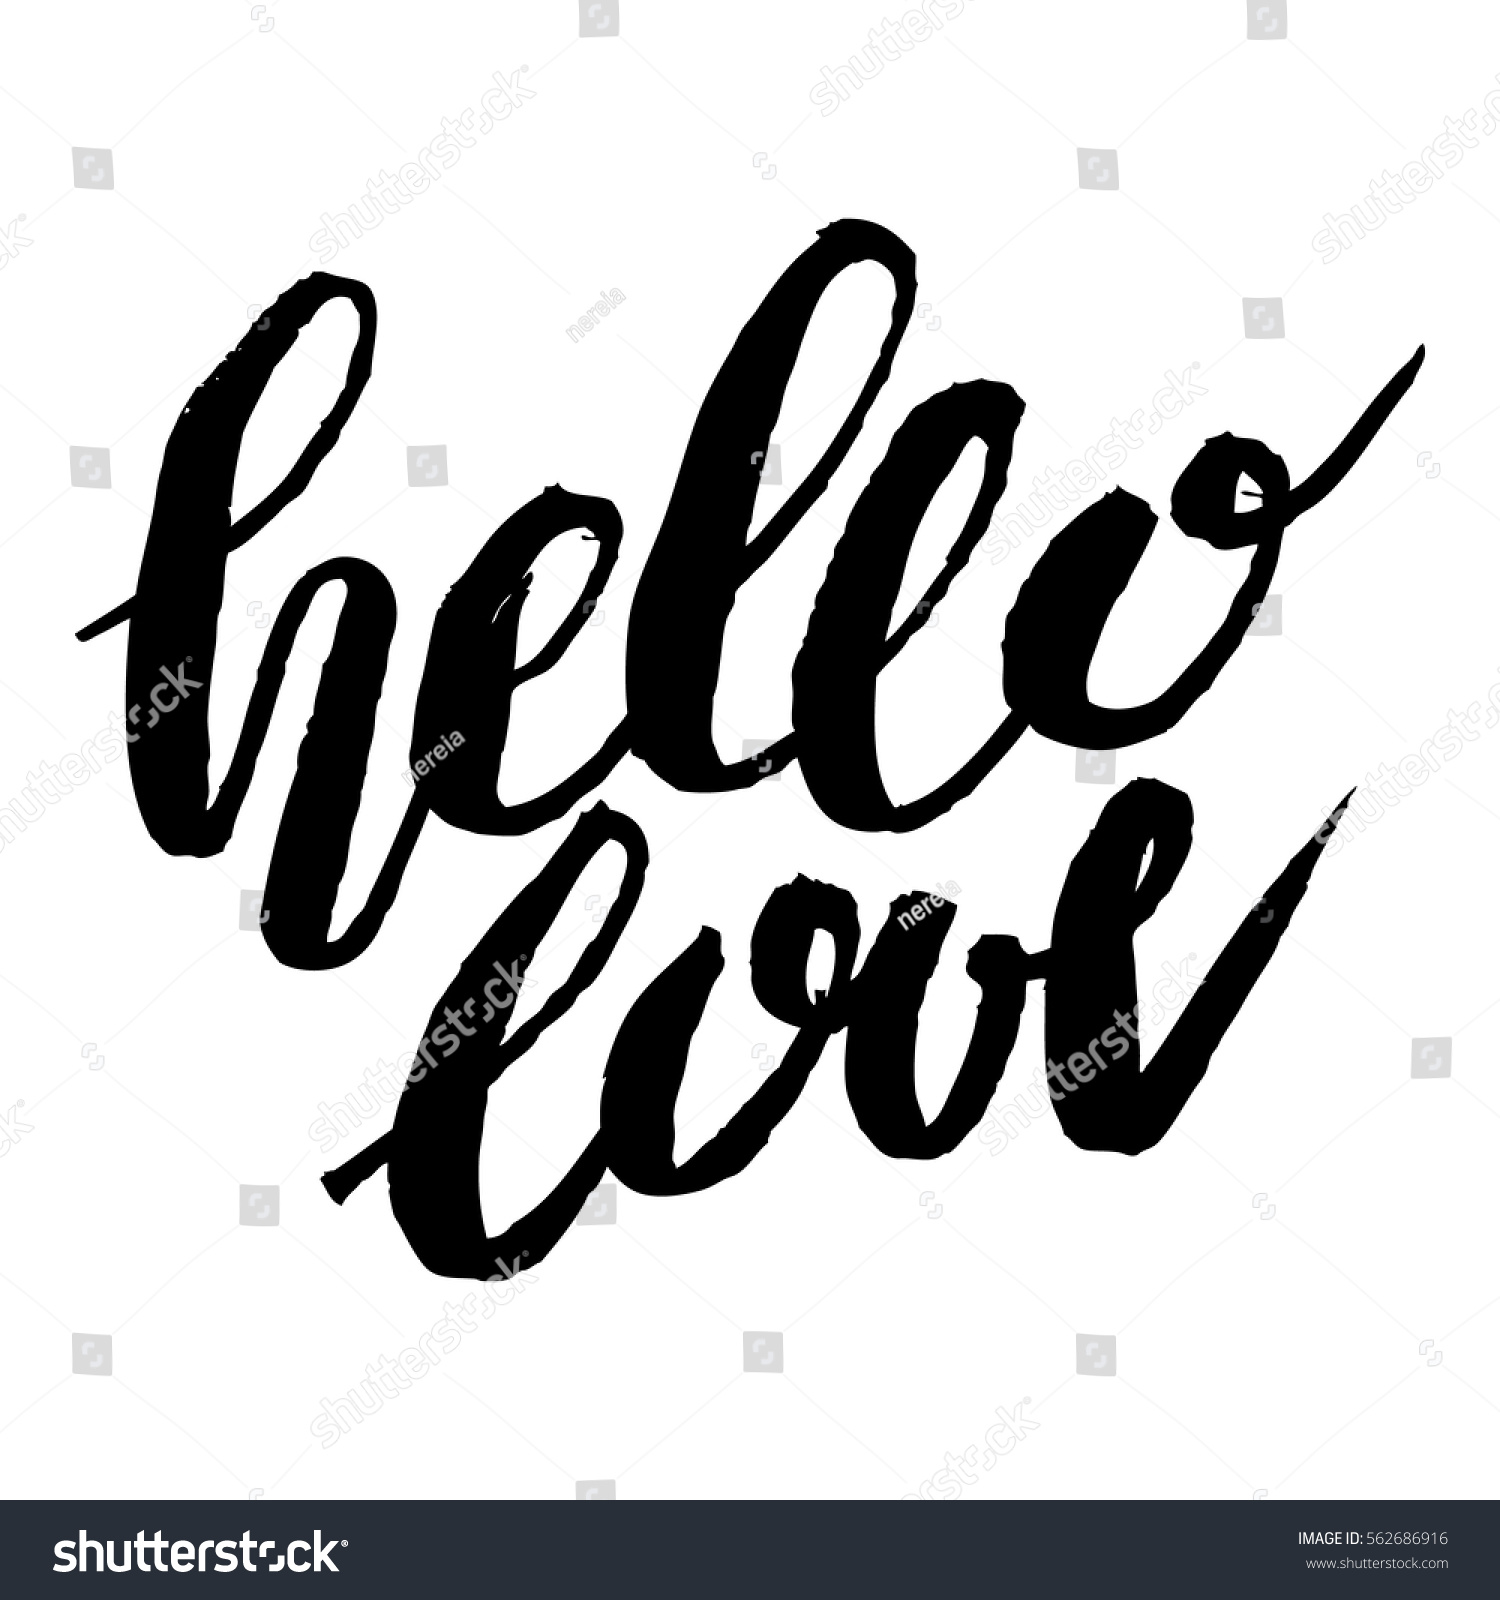 Amazing Handdrawn Lettering Of A Phrase Hello Love. Unique Typography Poster Or  Apparel Design. Modern